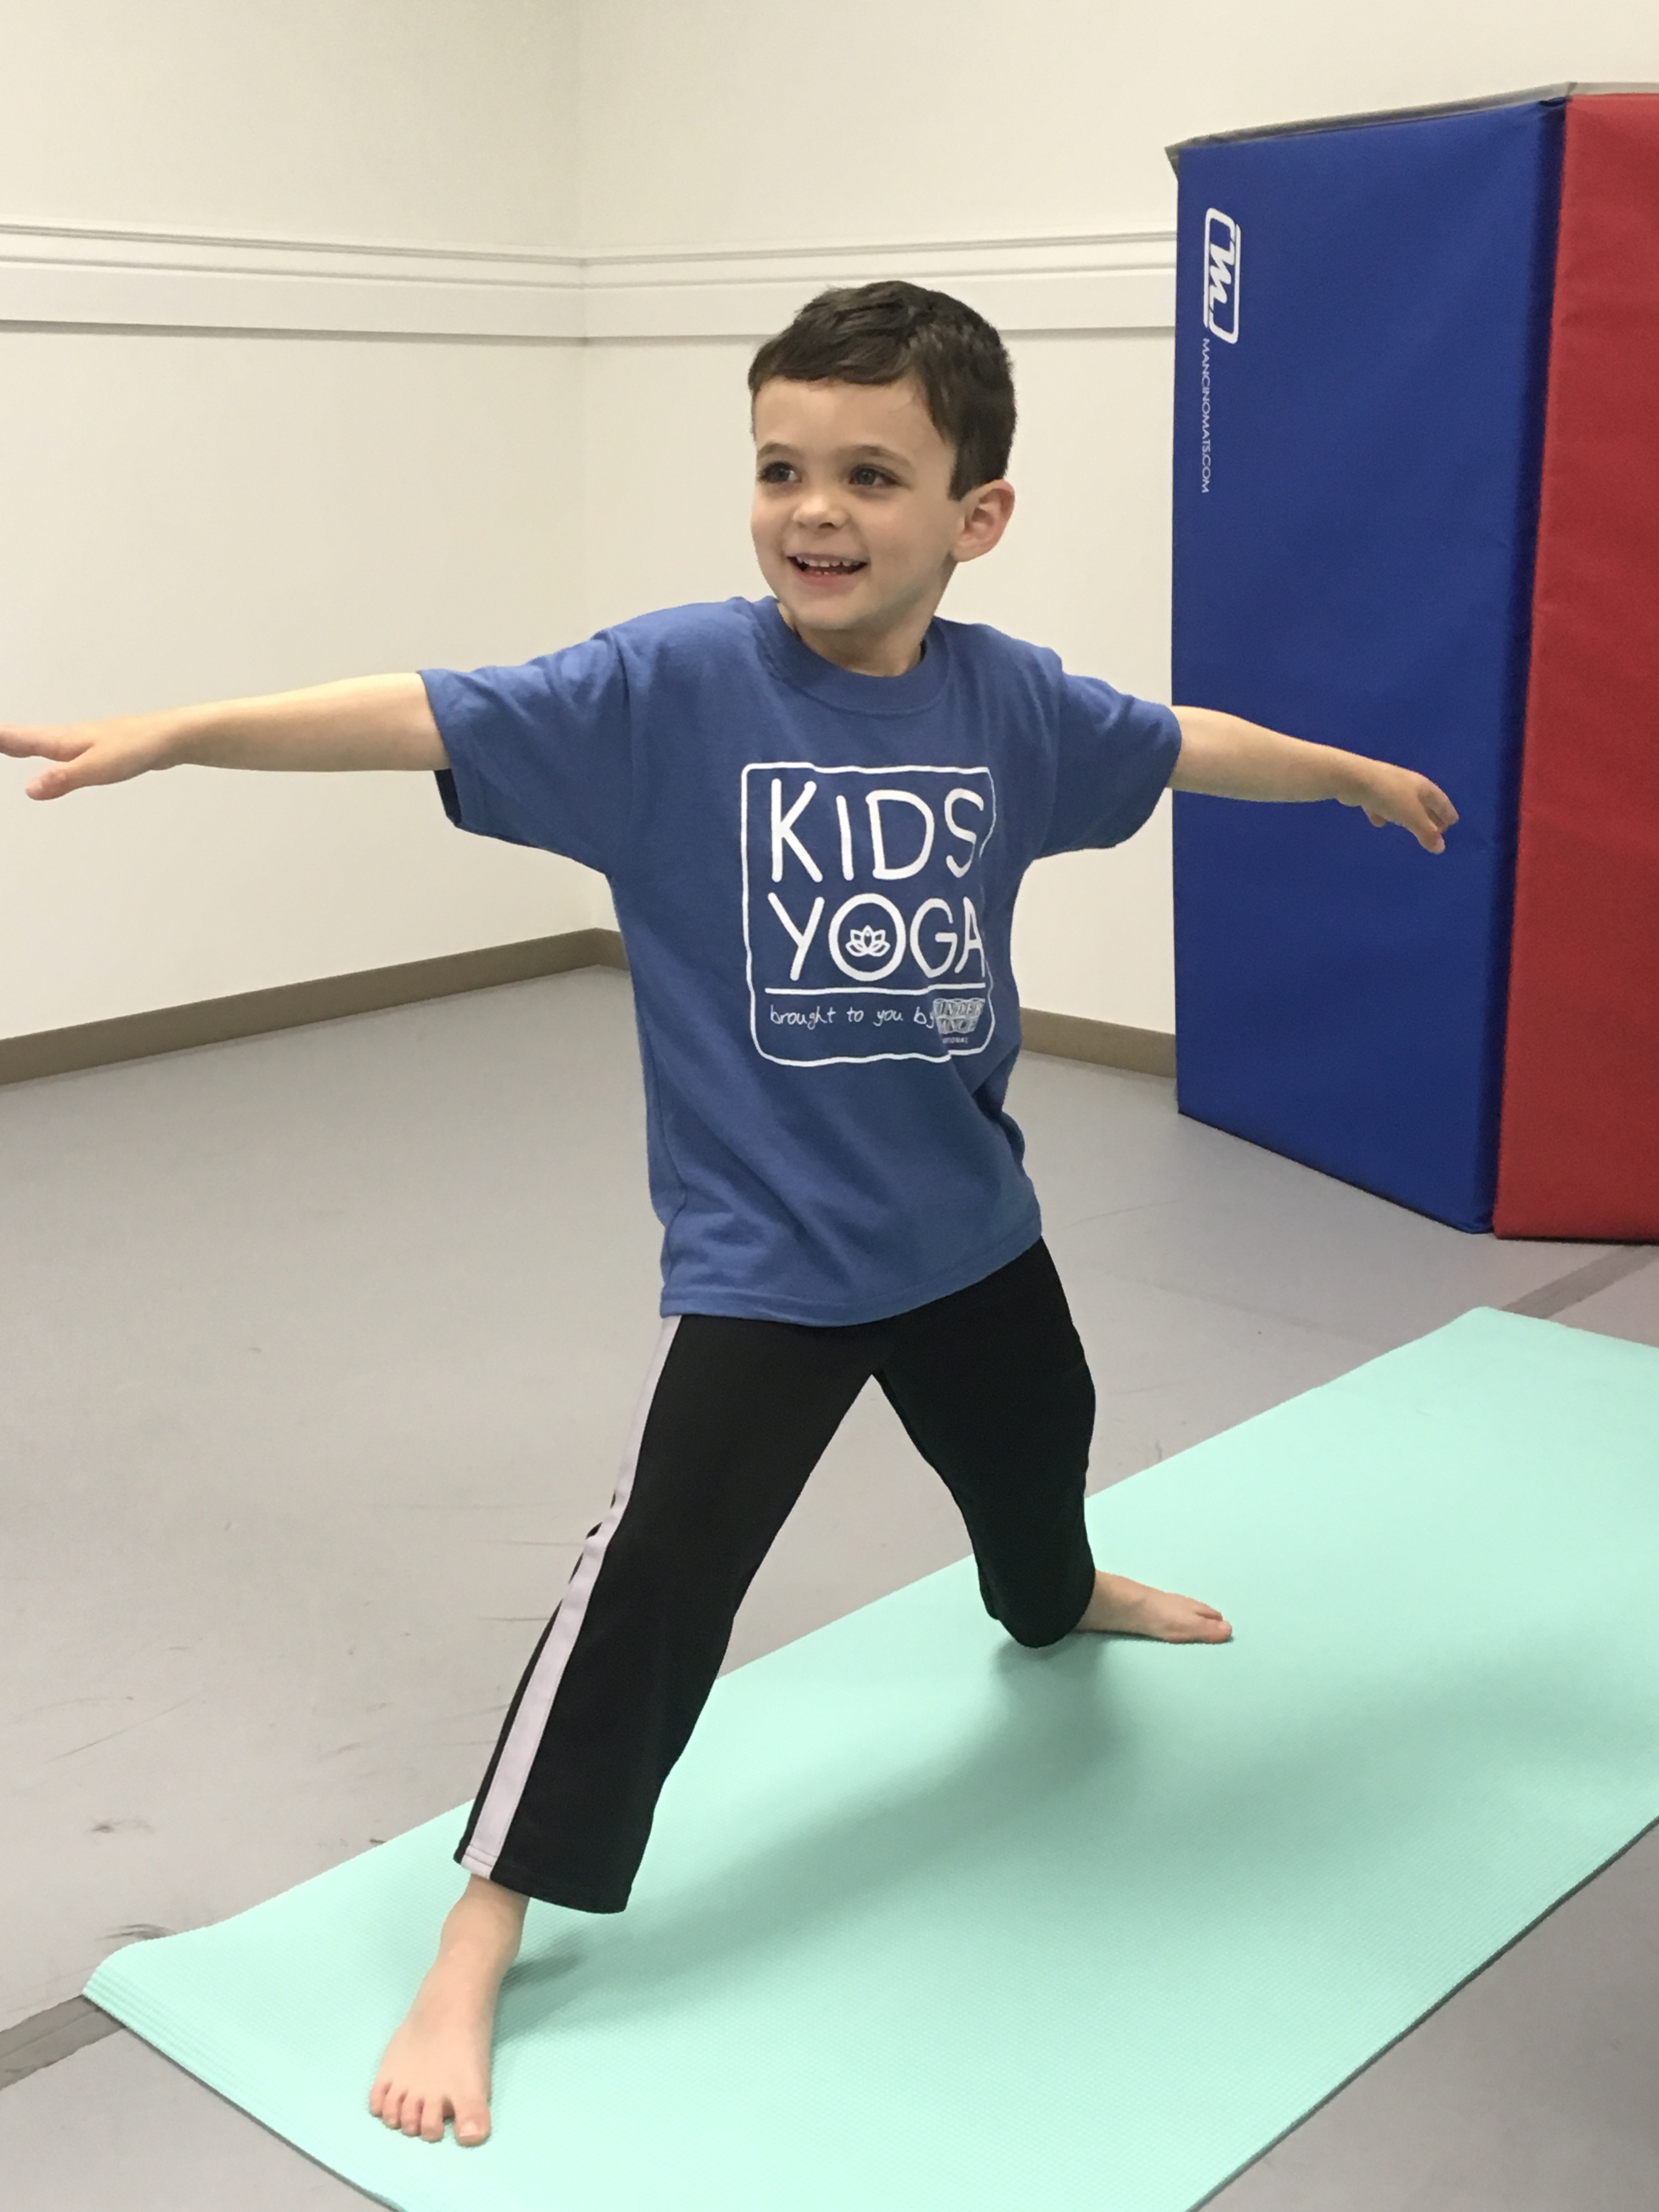 Boy with Kids Yoga Shirt